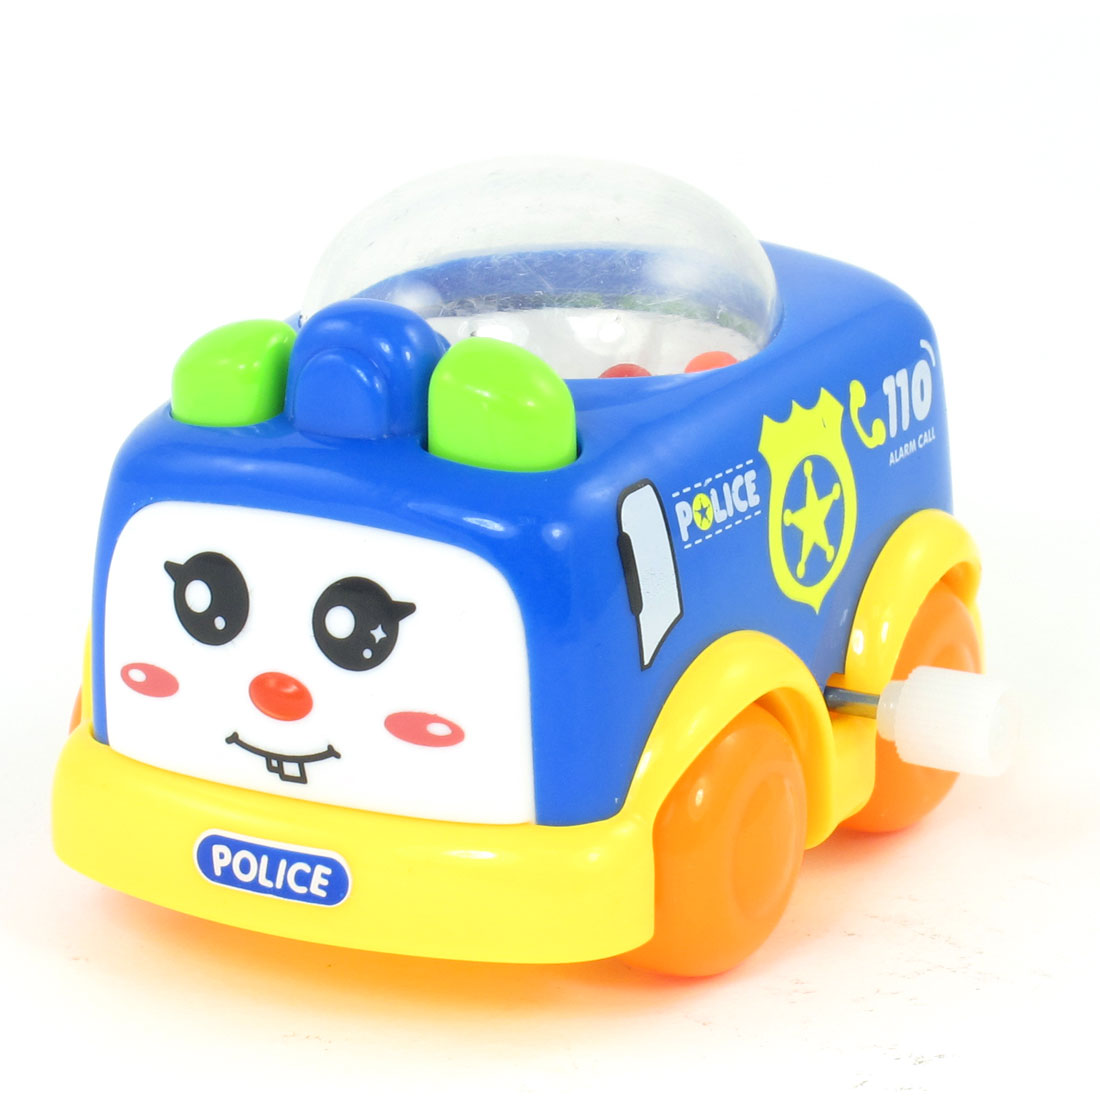 Multicolored Plastic FBI Police Model Car Toy for Child